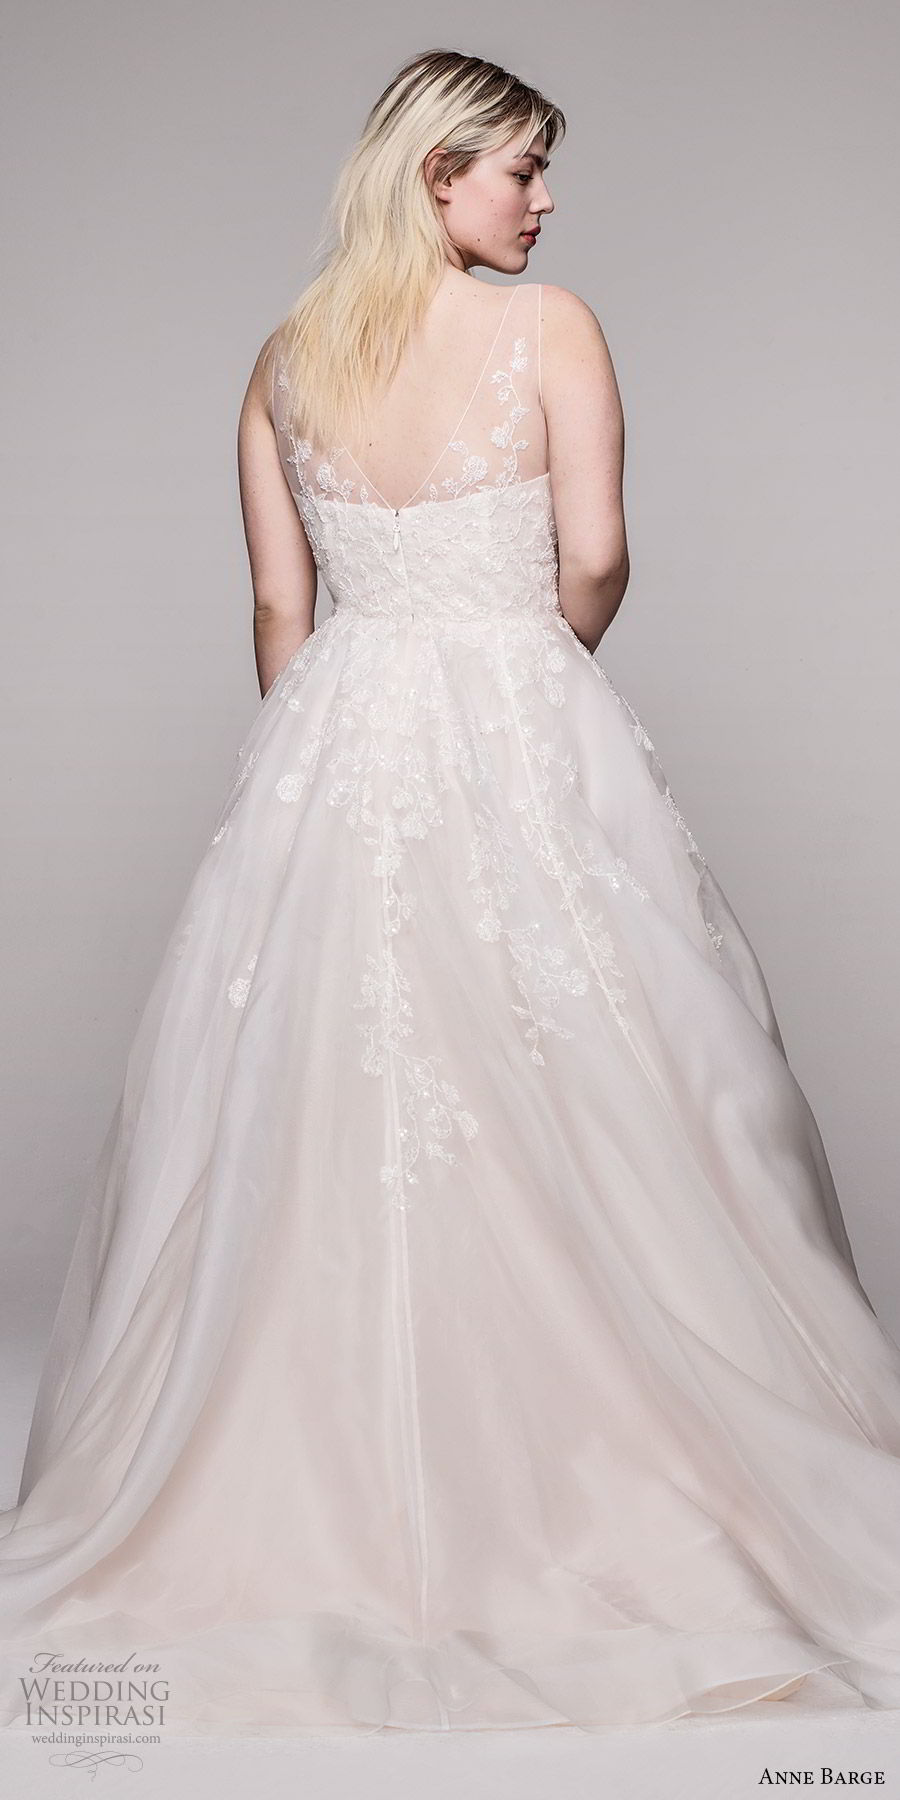 anne barge 2020 bridal plus size sleeveless illusion bateau neck sweetheart neckline embellished bodice a line ball gown wedding dress (11) romantic elegant bv